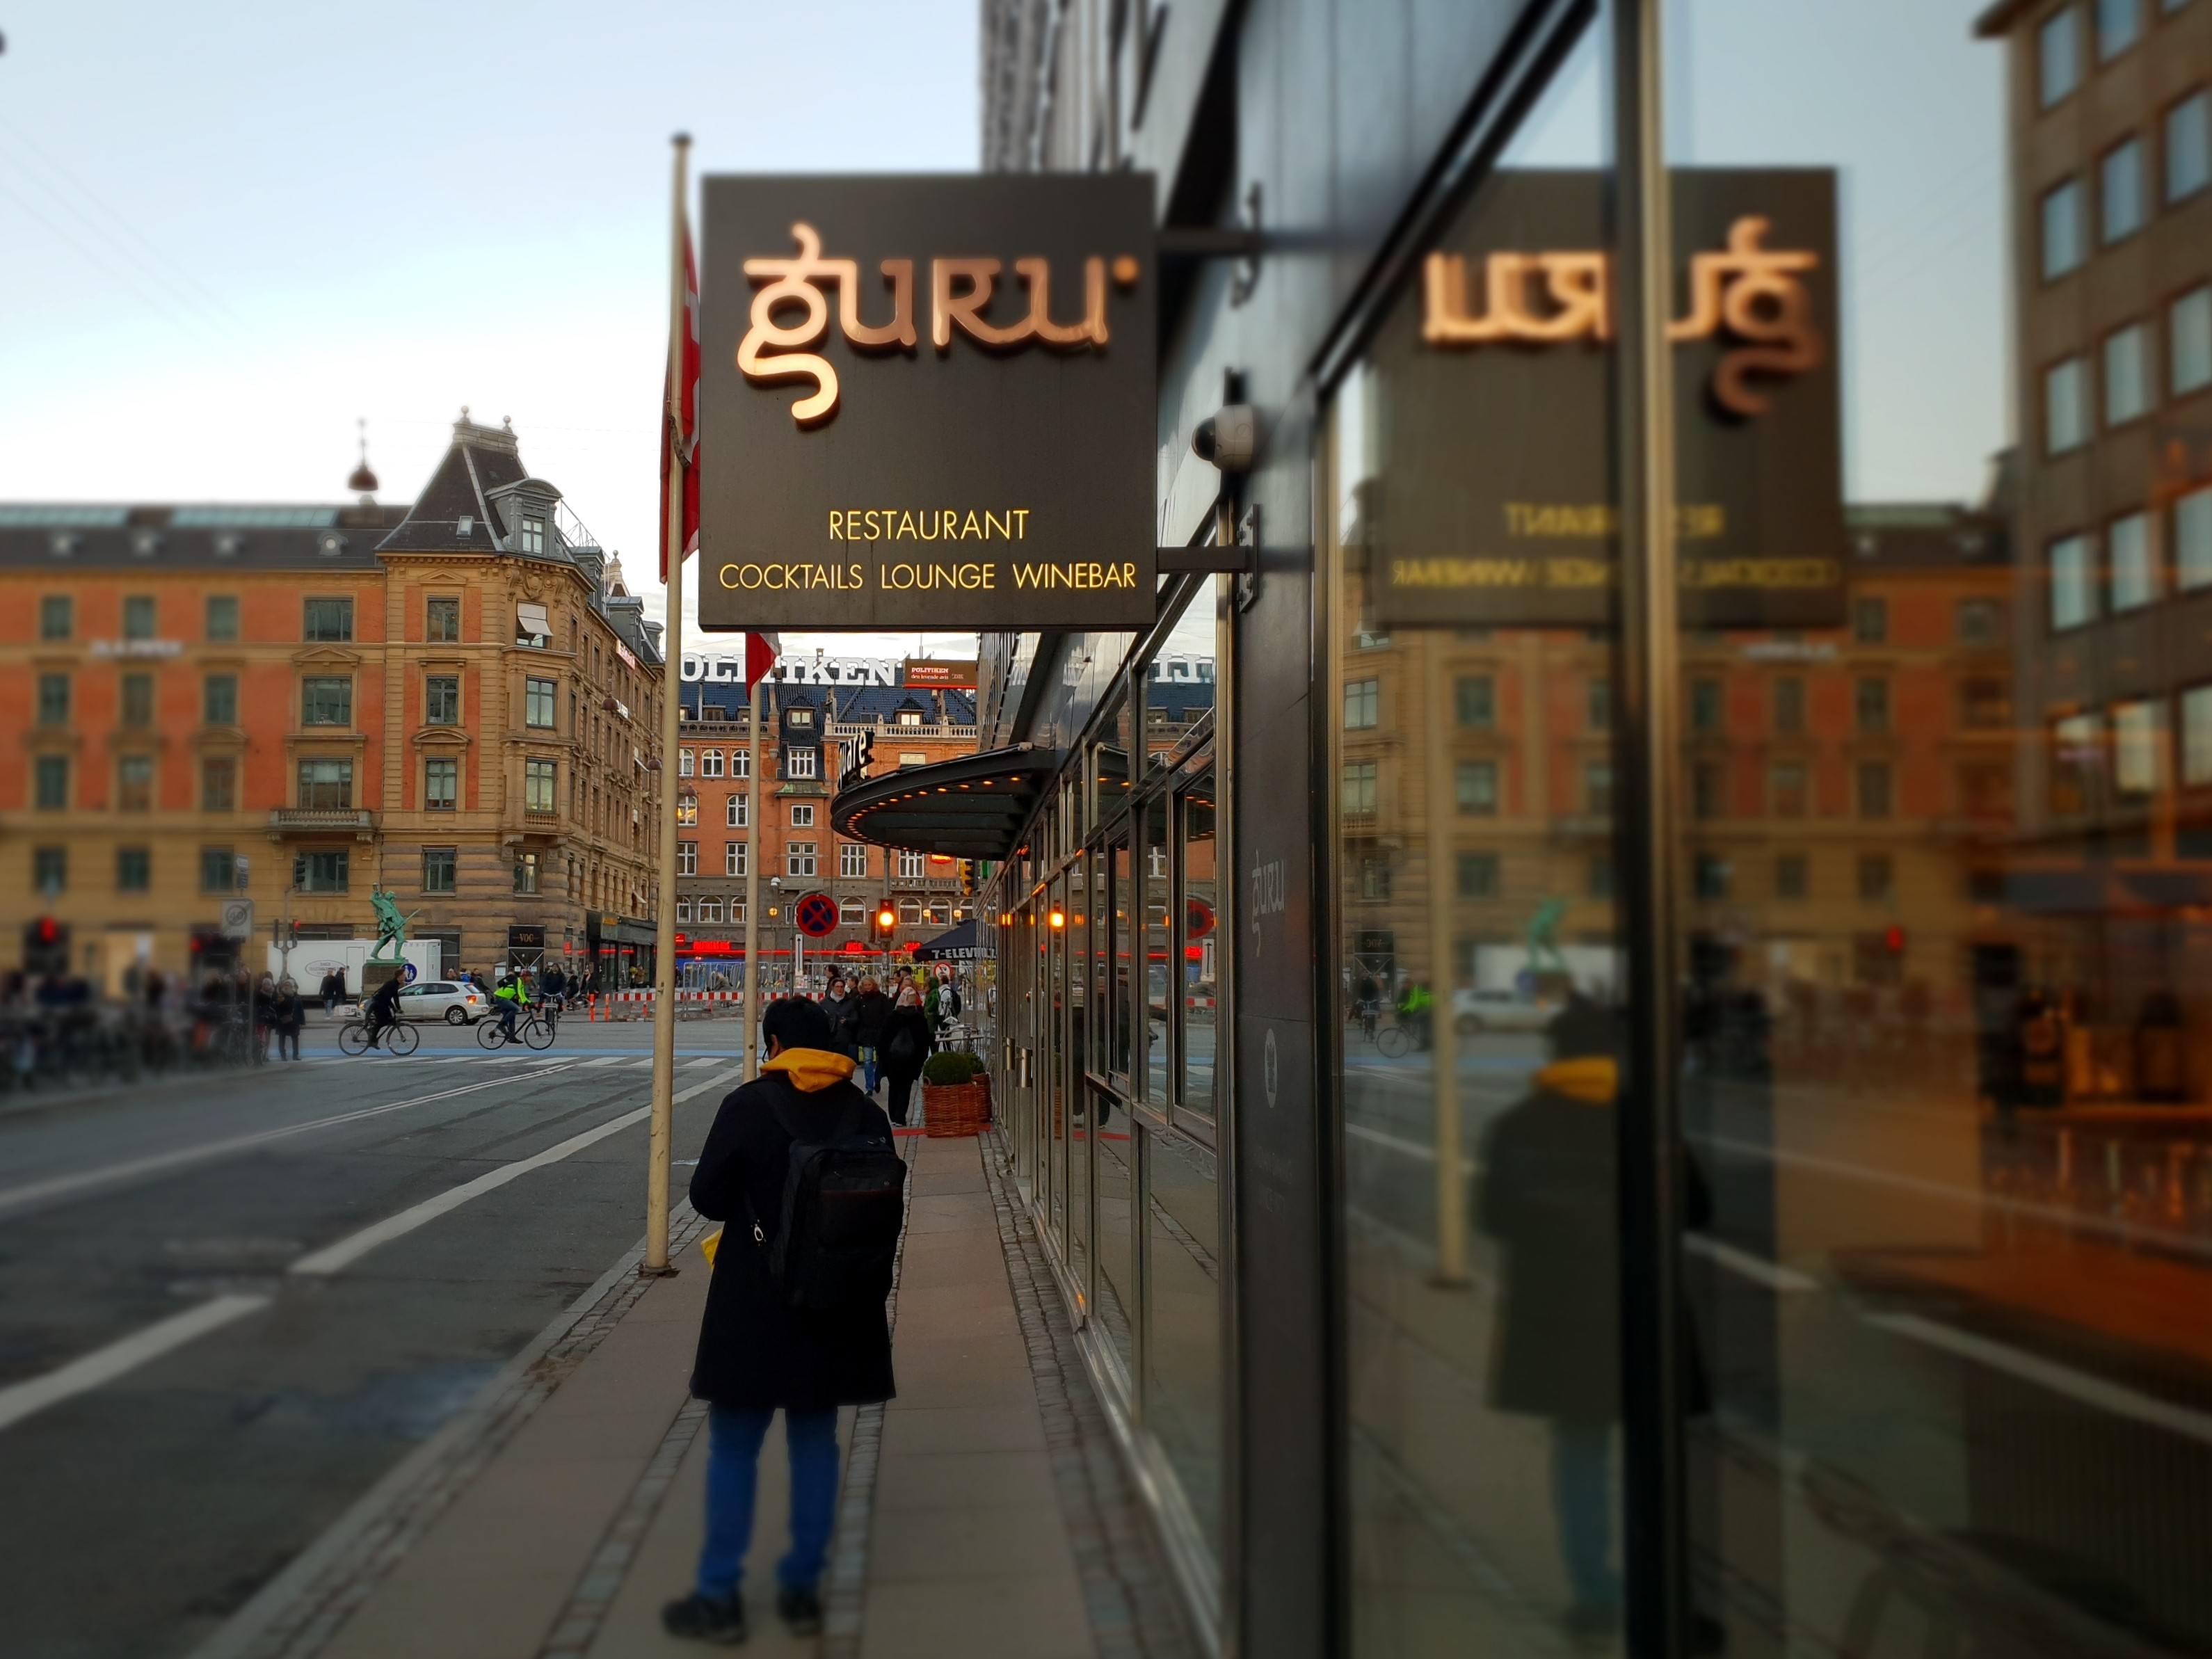 Guru in Copenhagen: What is Masala?